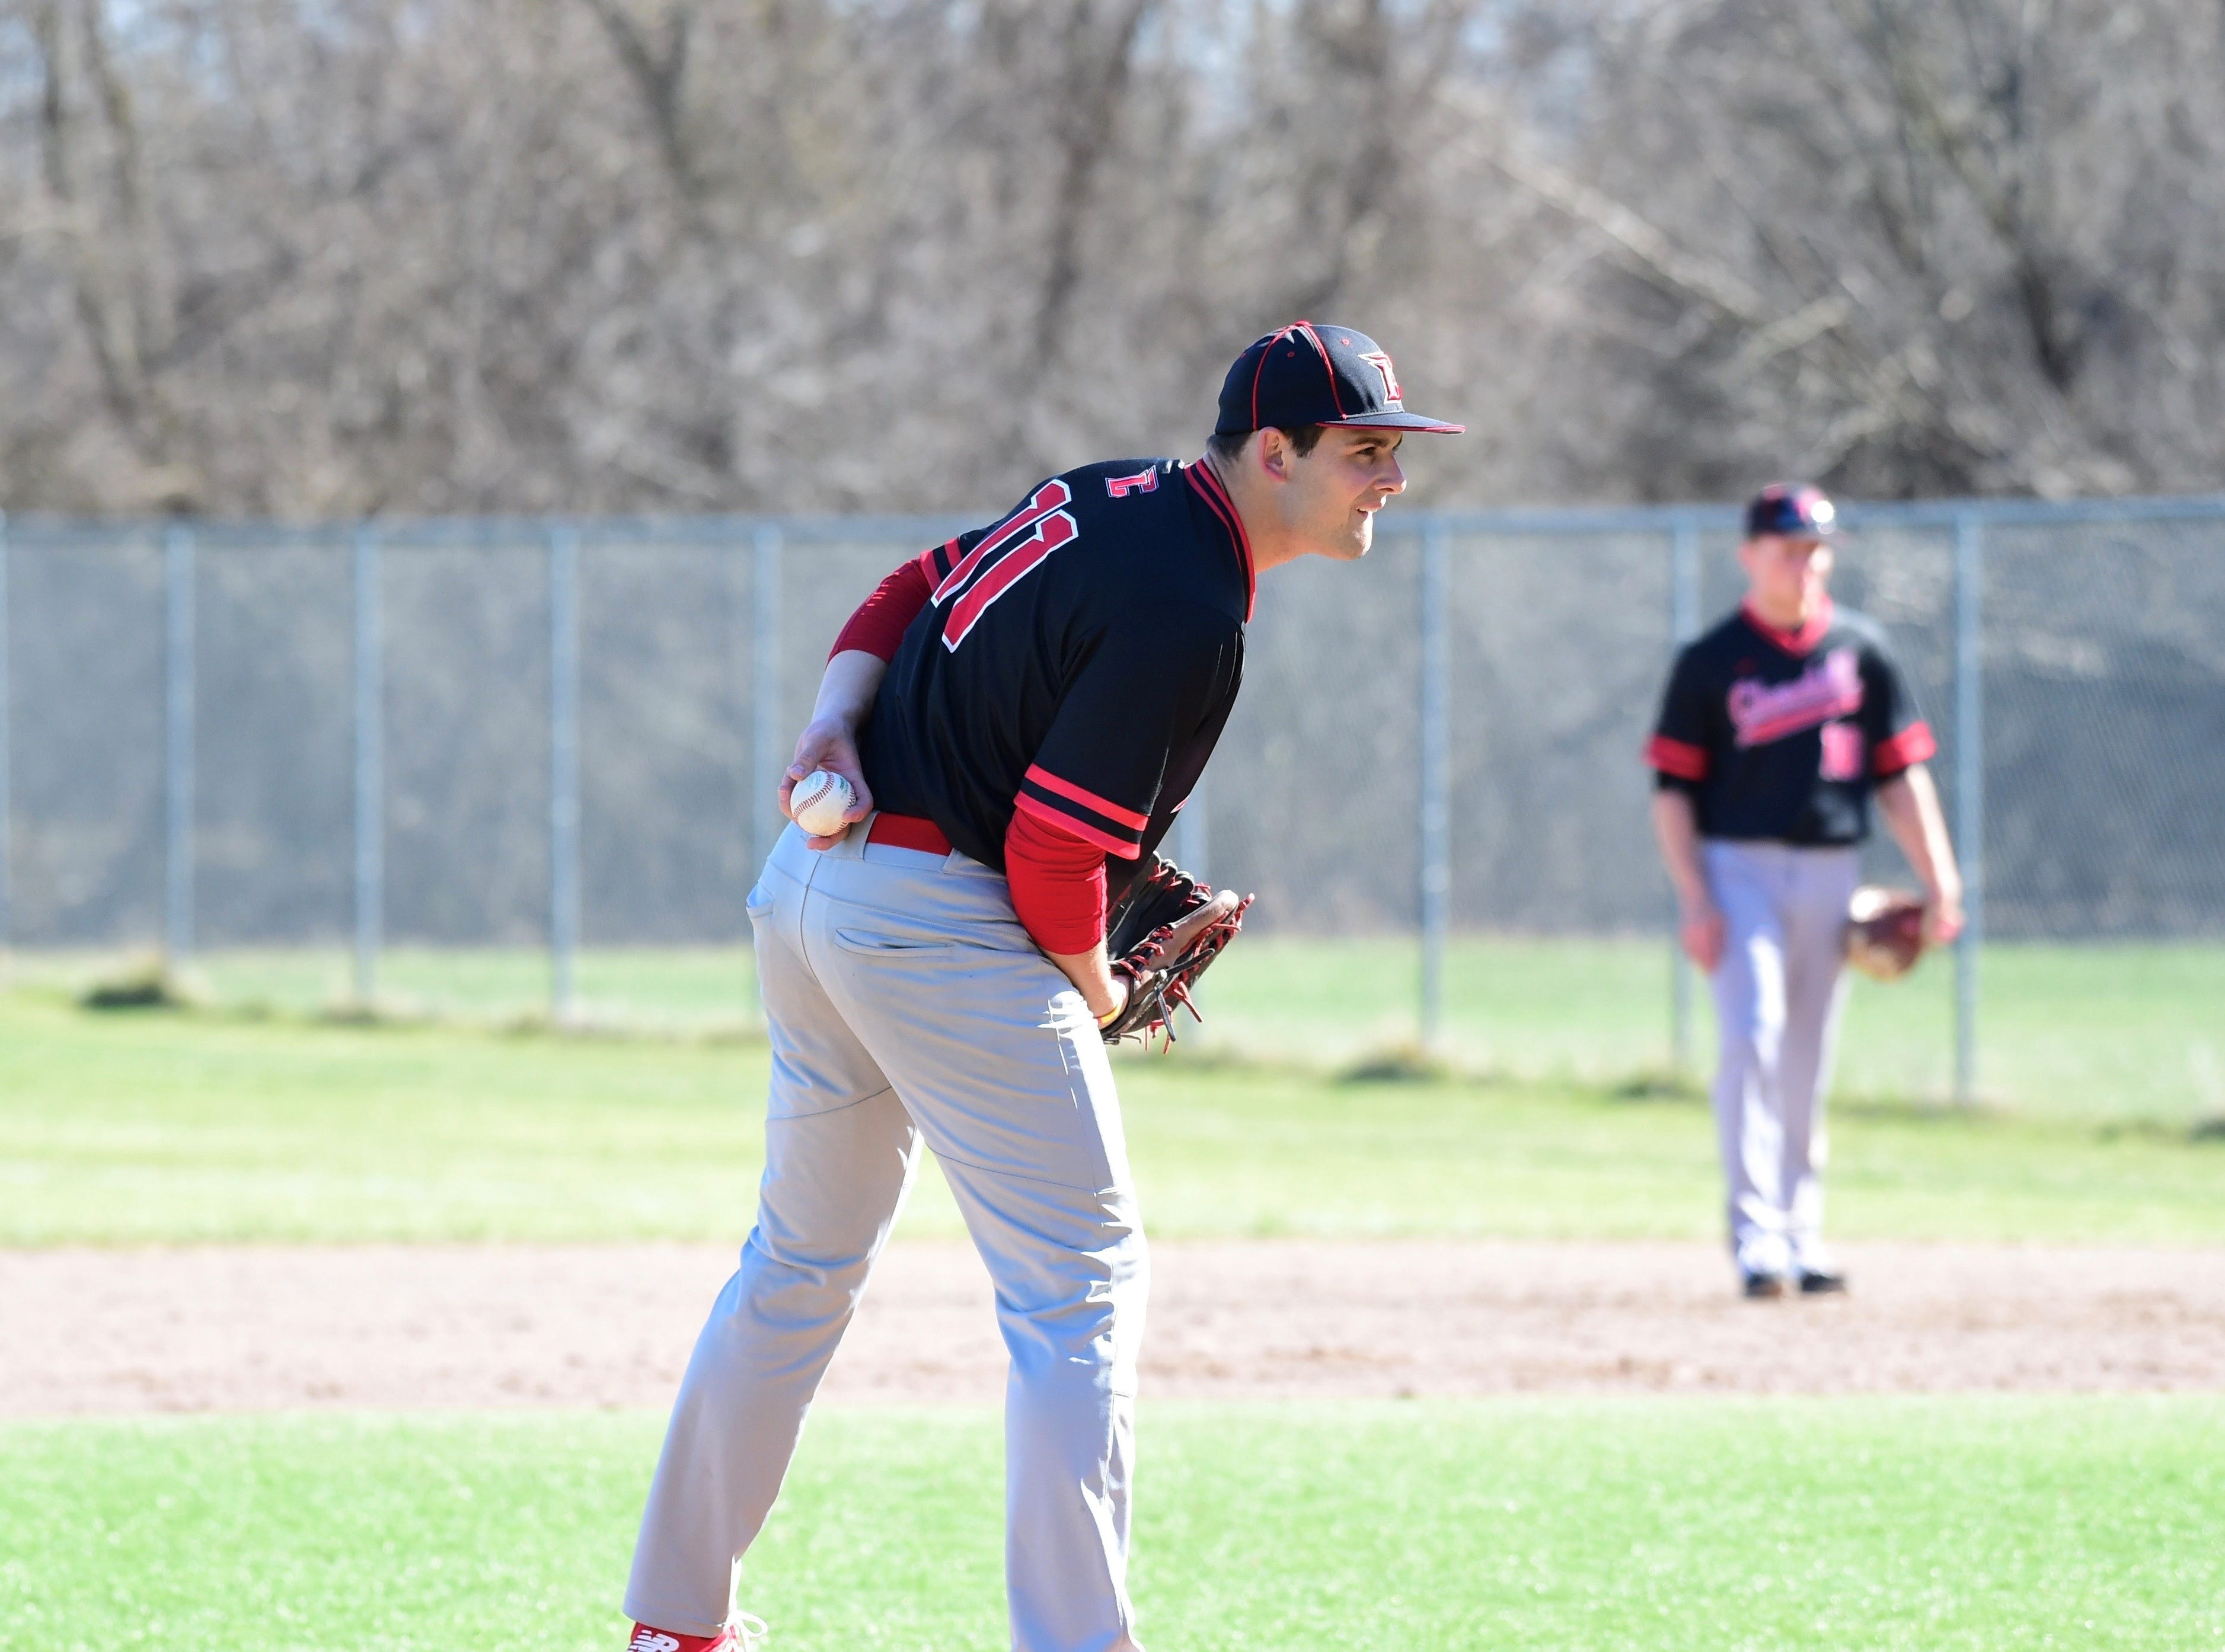 Livonia Churchill pitcher Drew Alsobrooks get the sign in a game against Stevenson on April 15, 2019.